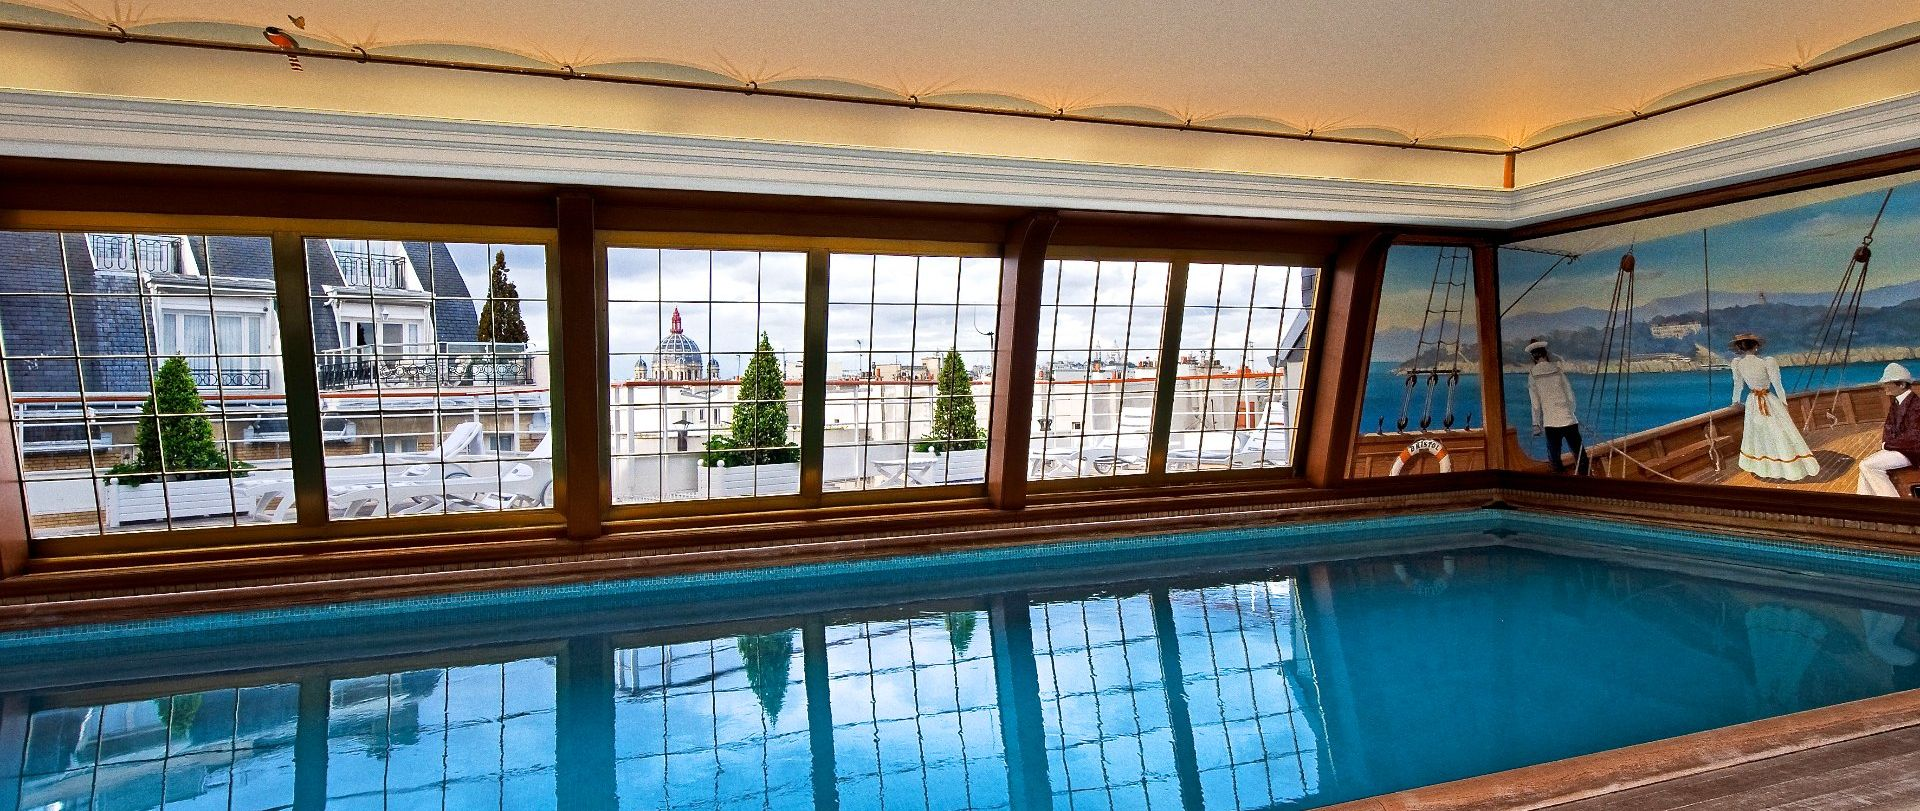 Best paris hotel spas and spa packages